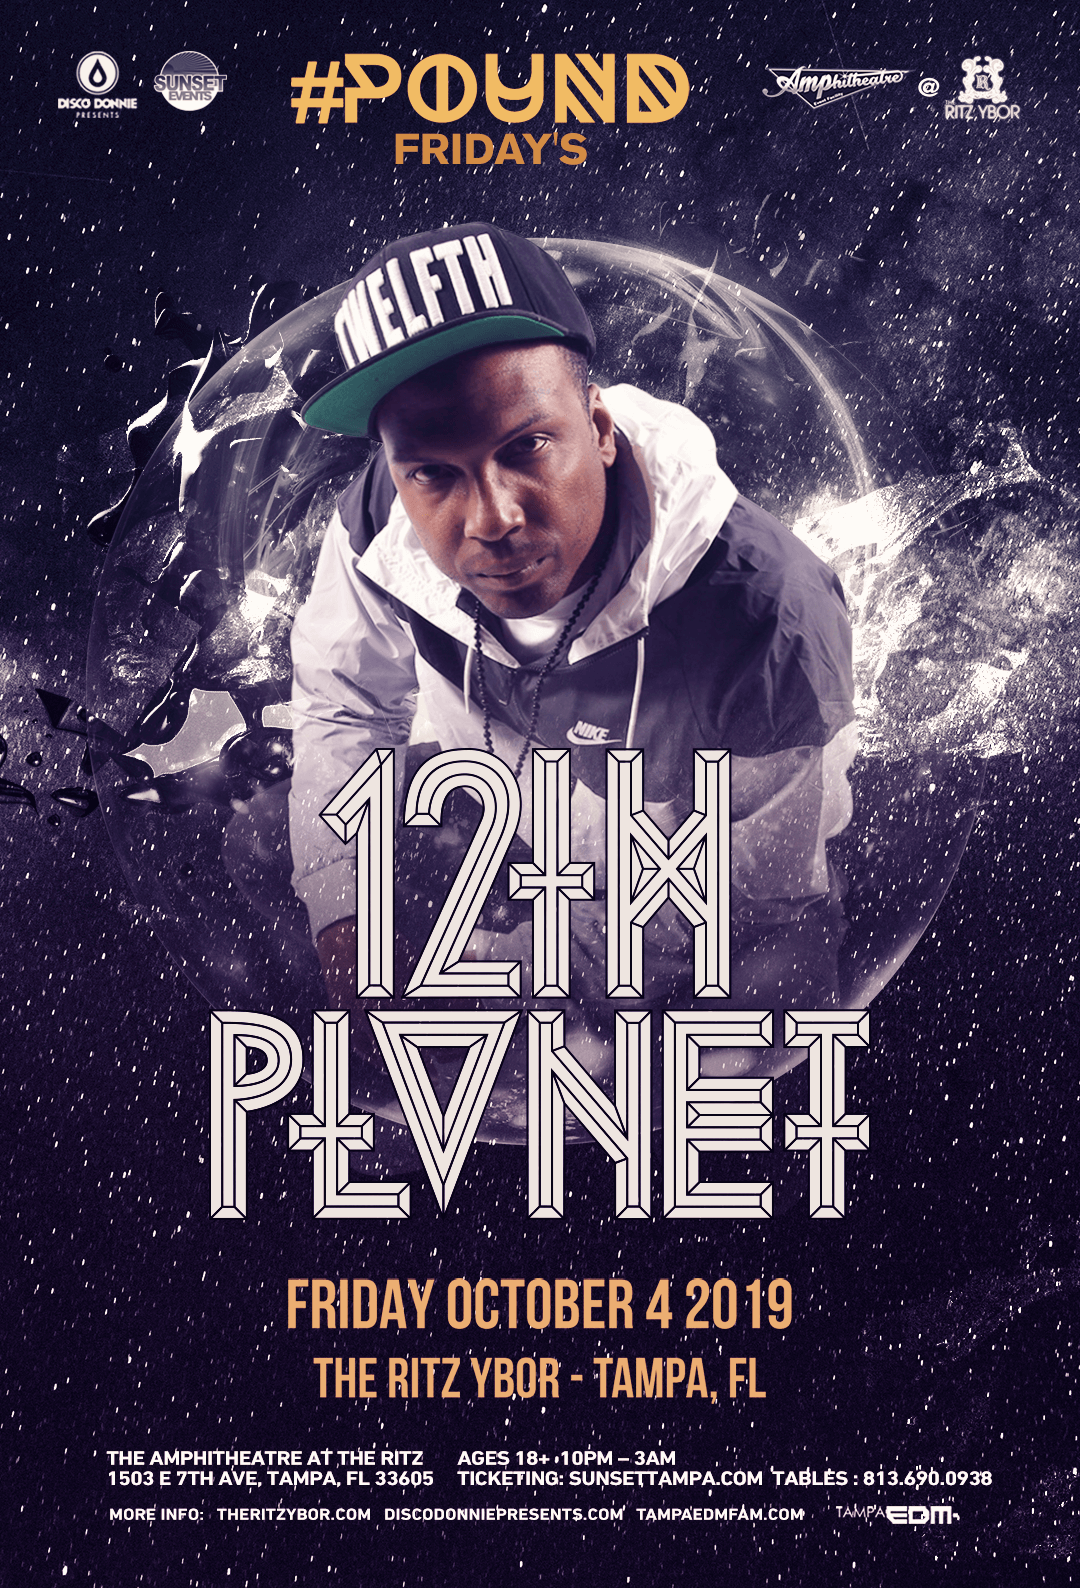 12th Planet – #Pound Fridays at The RITZ Ybor – 10/4/2019